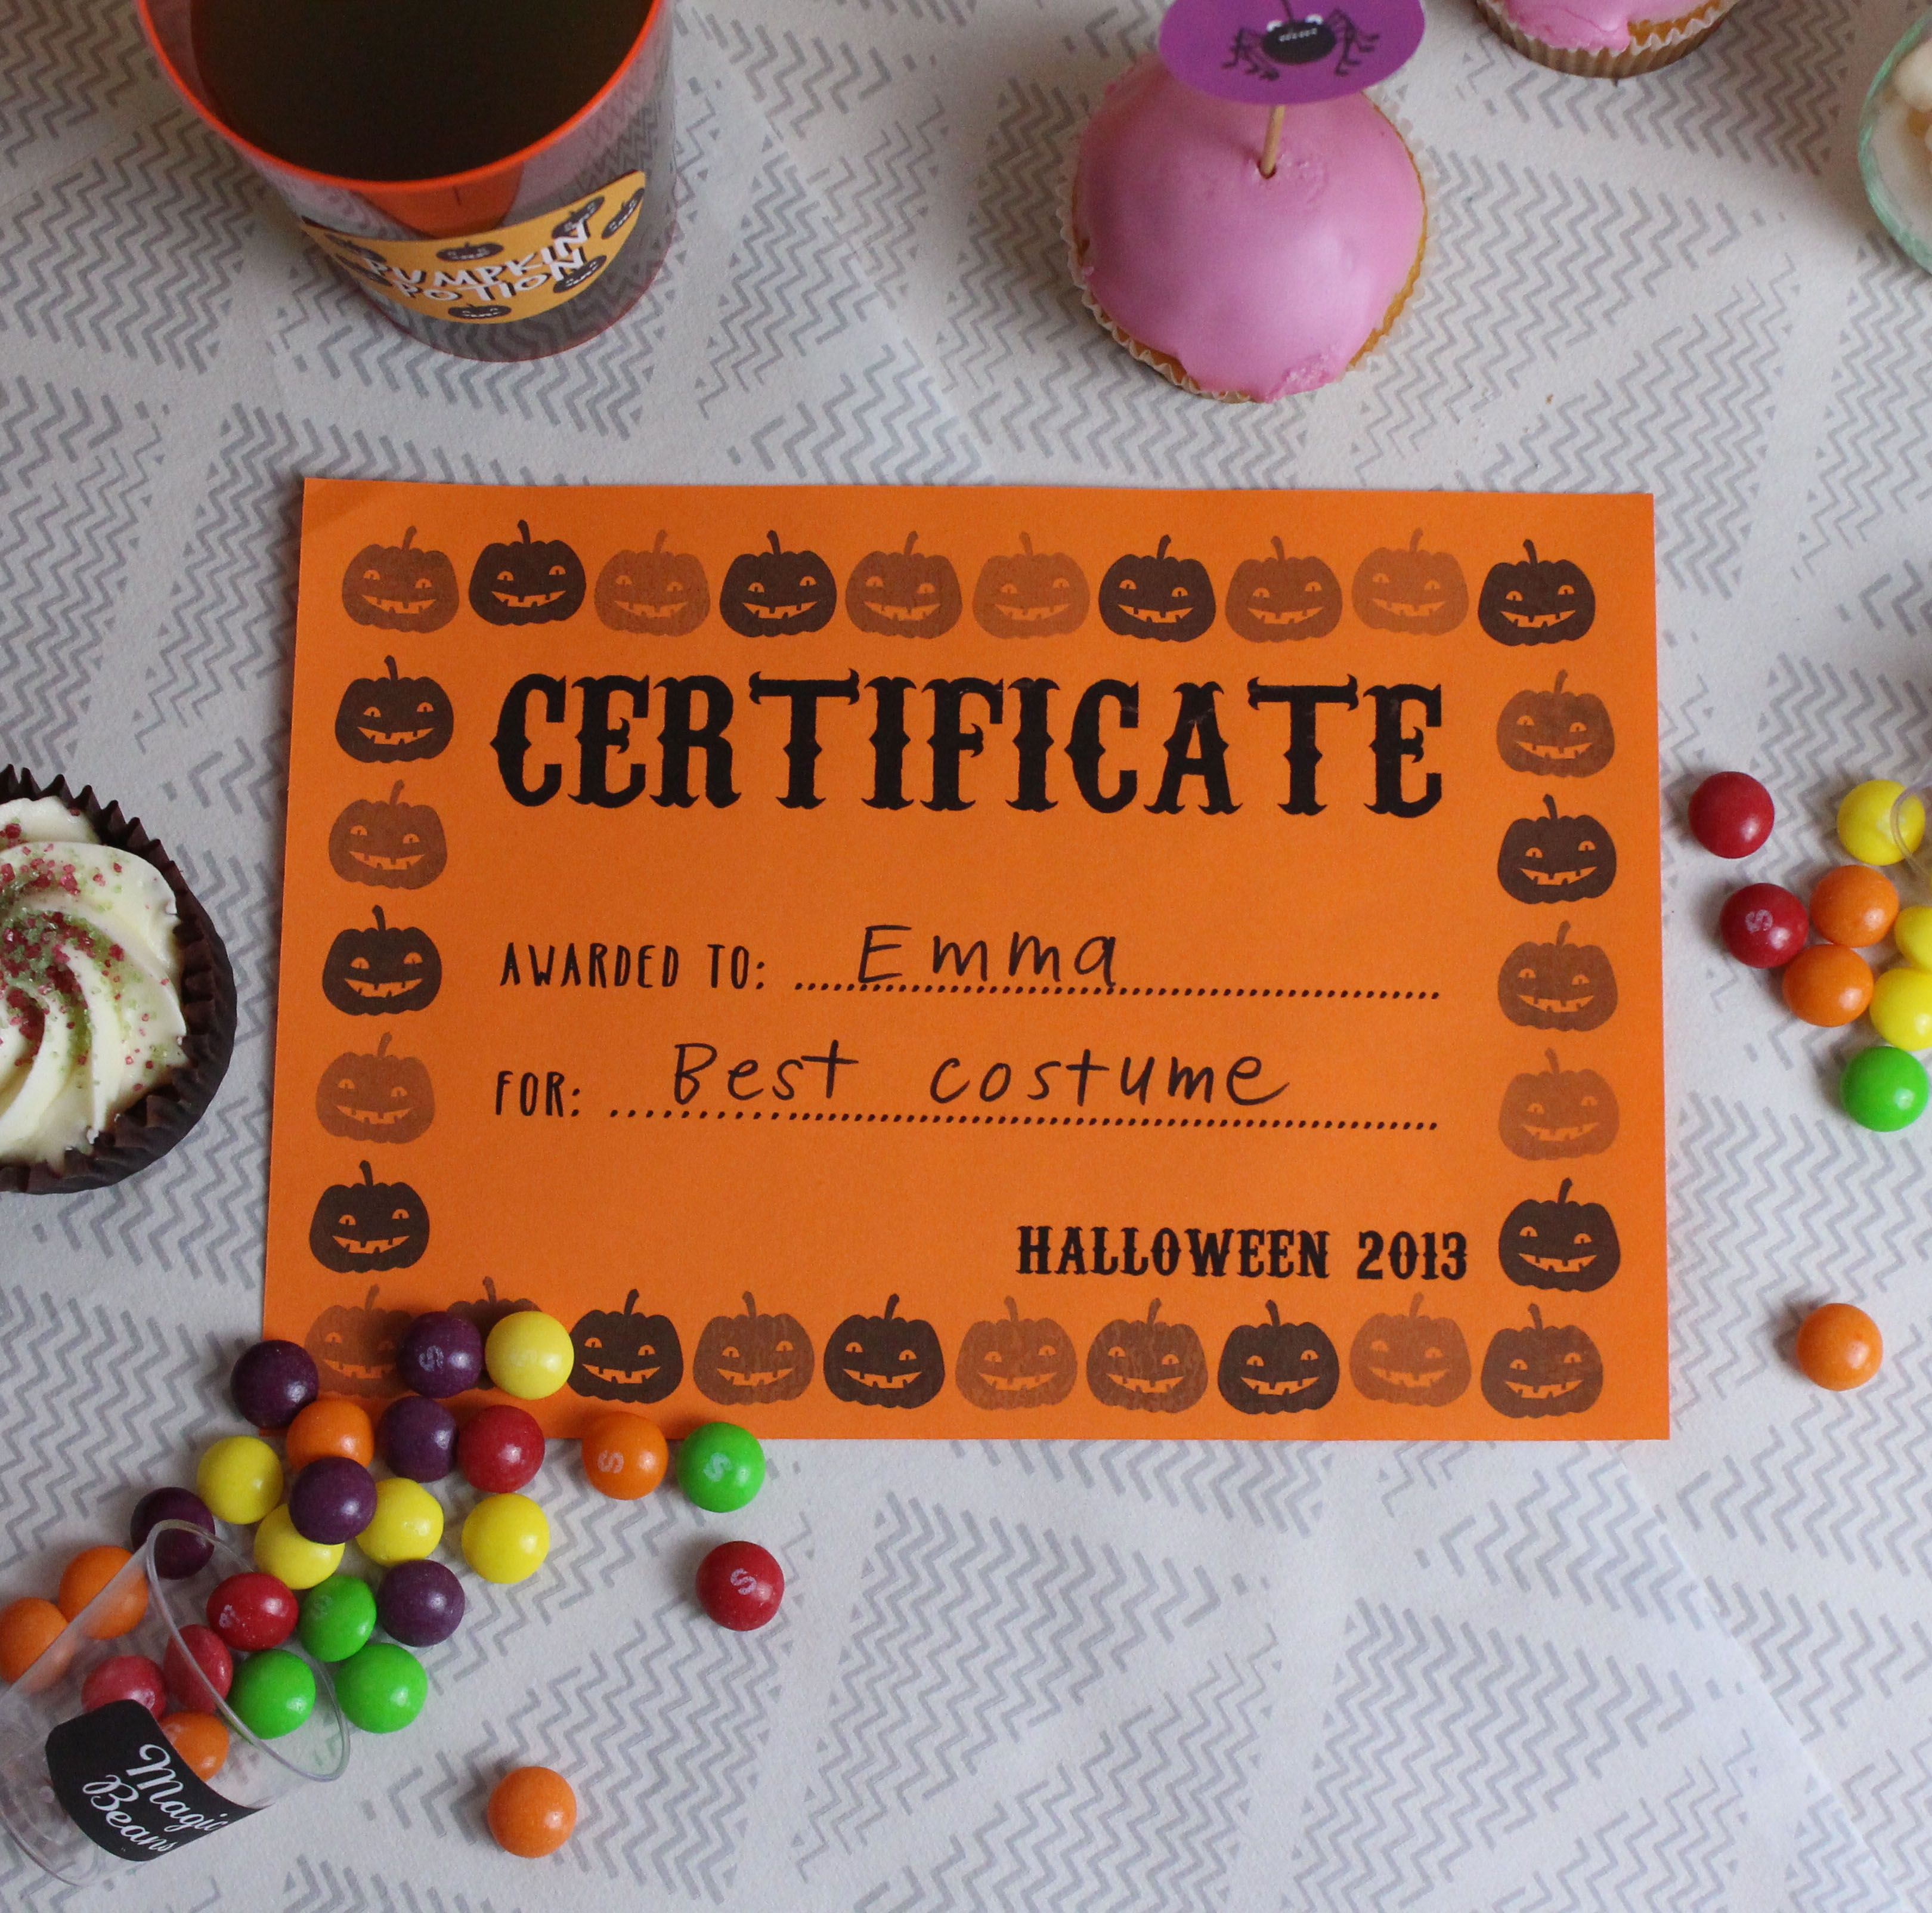 Free Printable Certificates For Halloween! | Our Halloween Party - Best Costume Certificate Printable Free